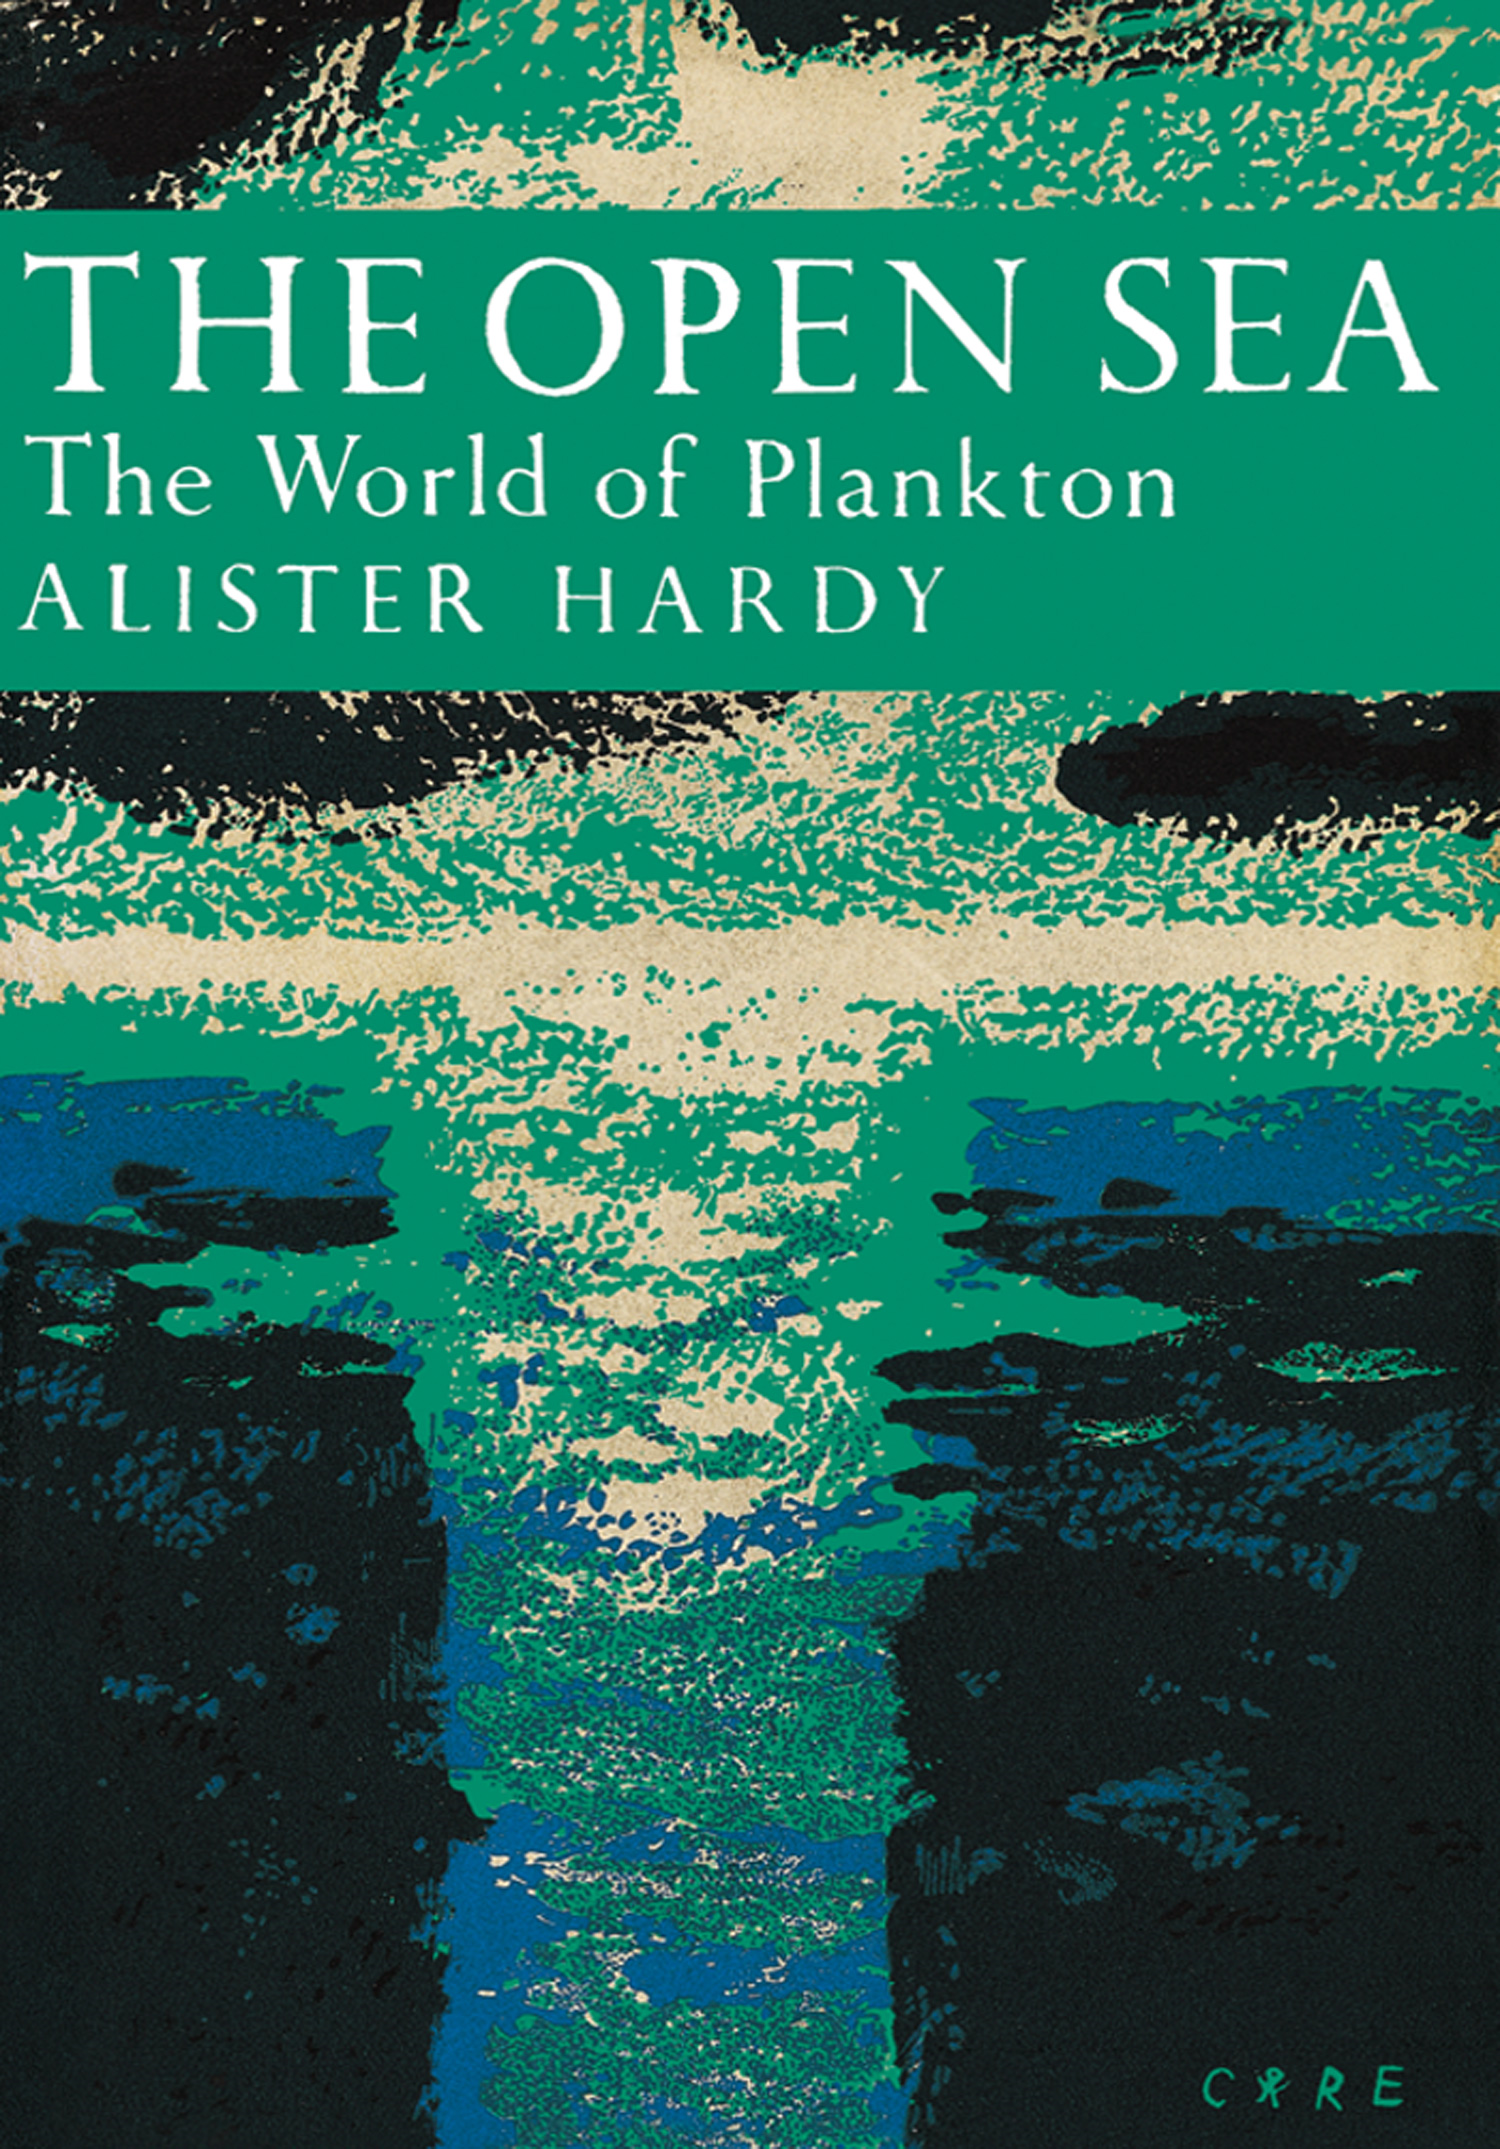 The Open Sea: The World of Plankton (Collins New Naturalist Library,  Book 34)